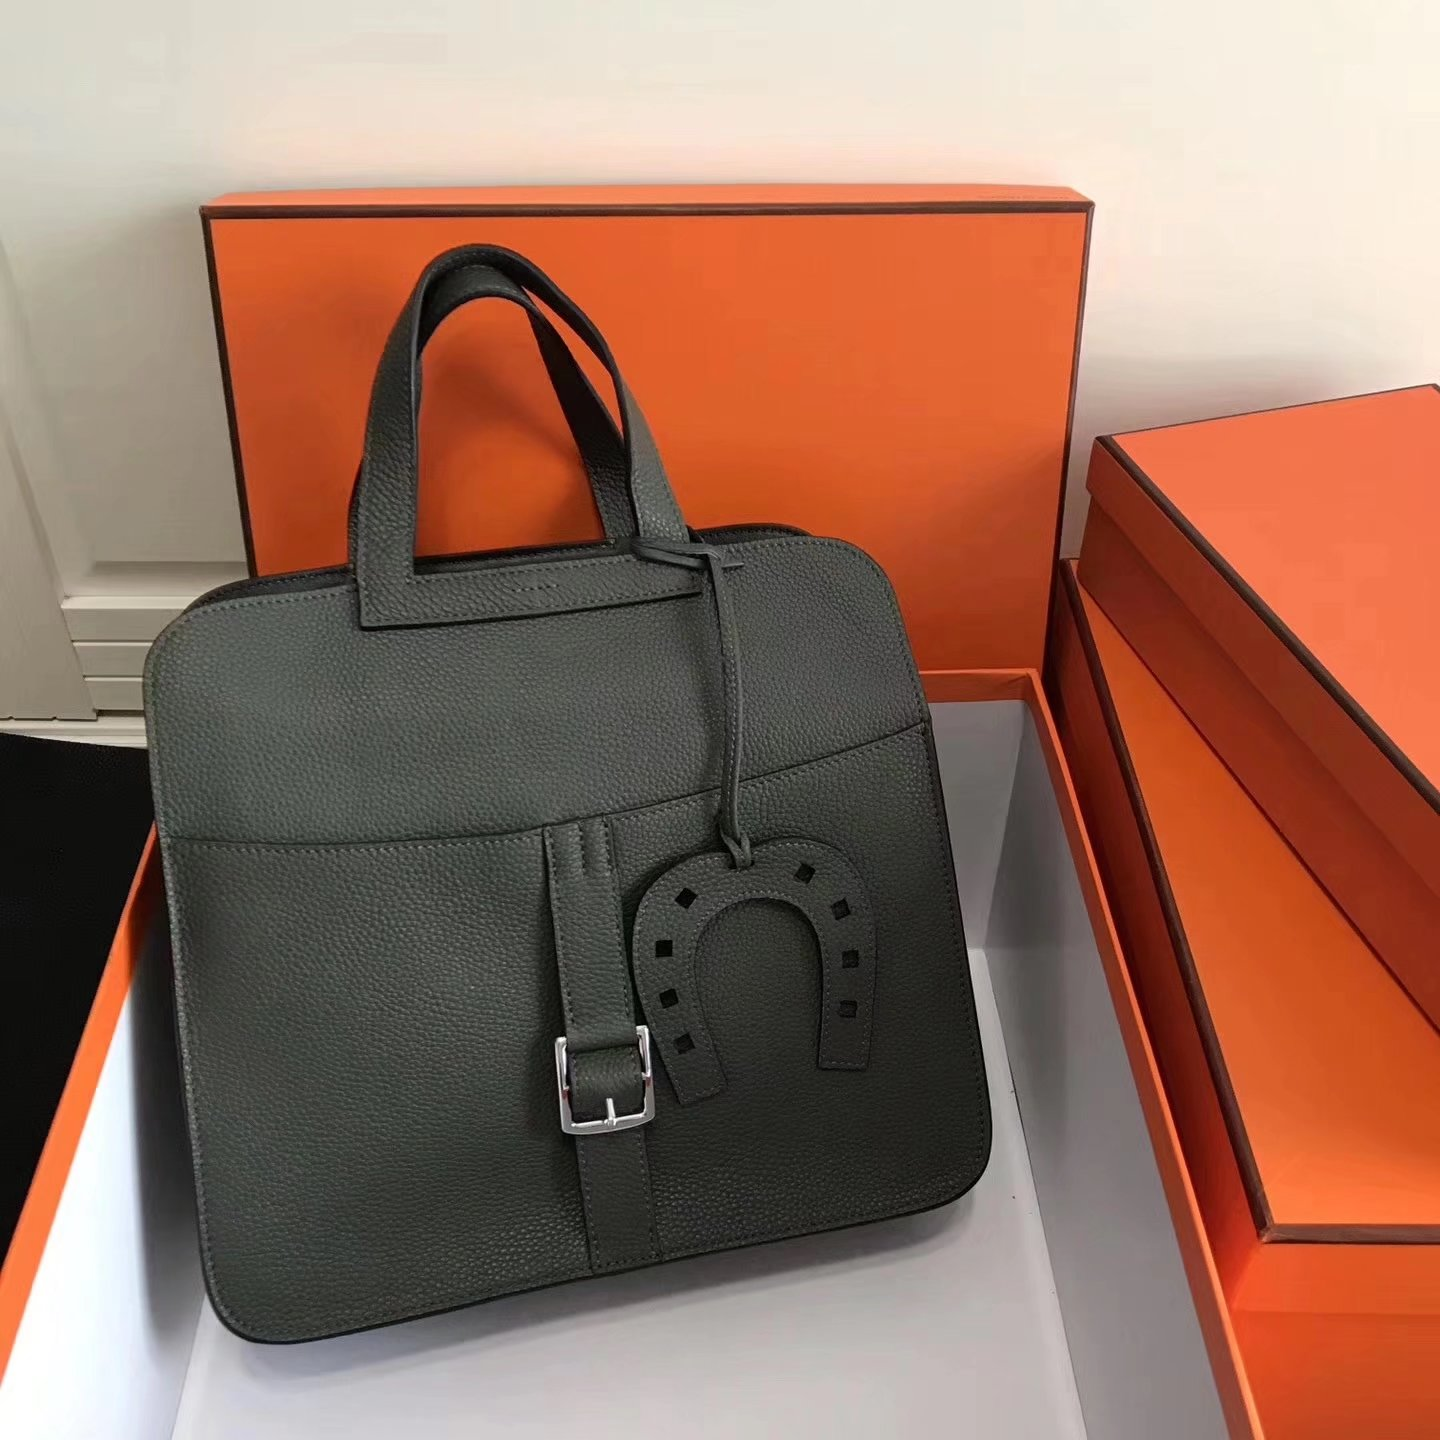 Hermes 31cm Halzan Dark Green Taurillon Clemence Leather